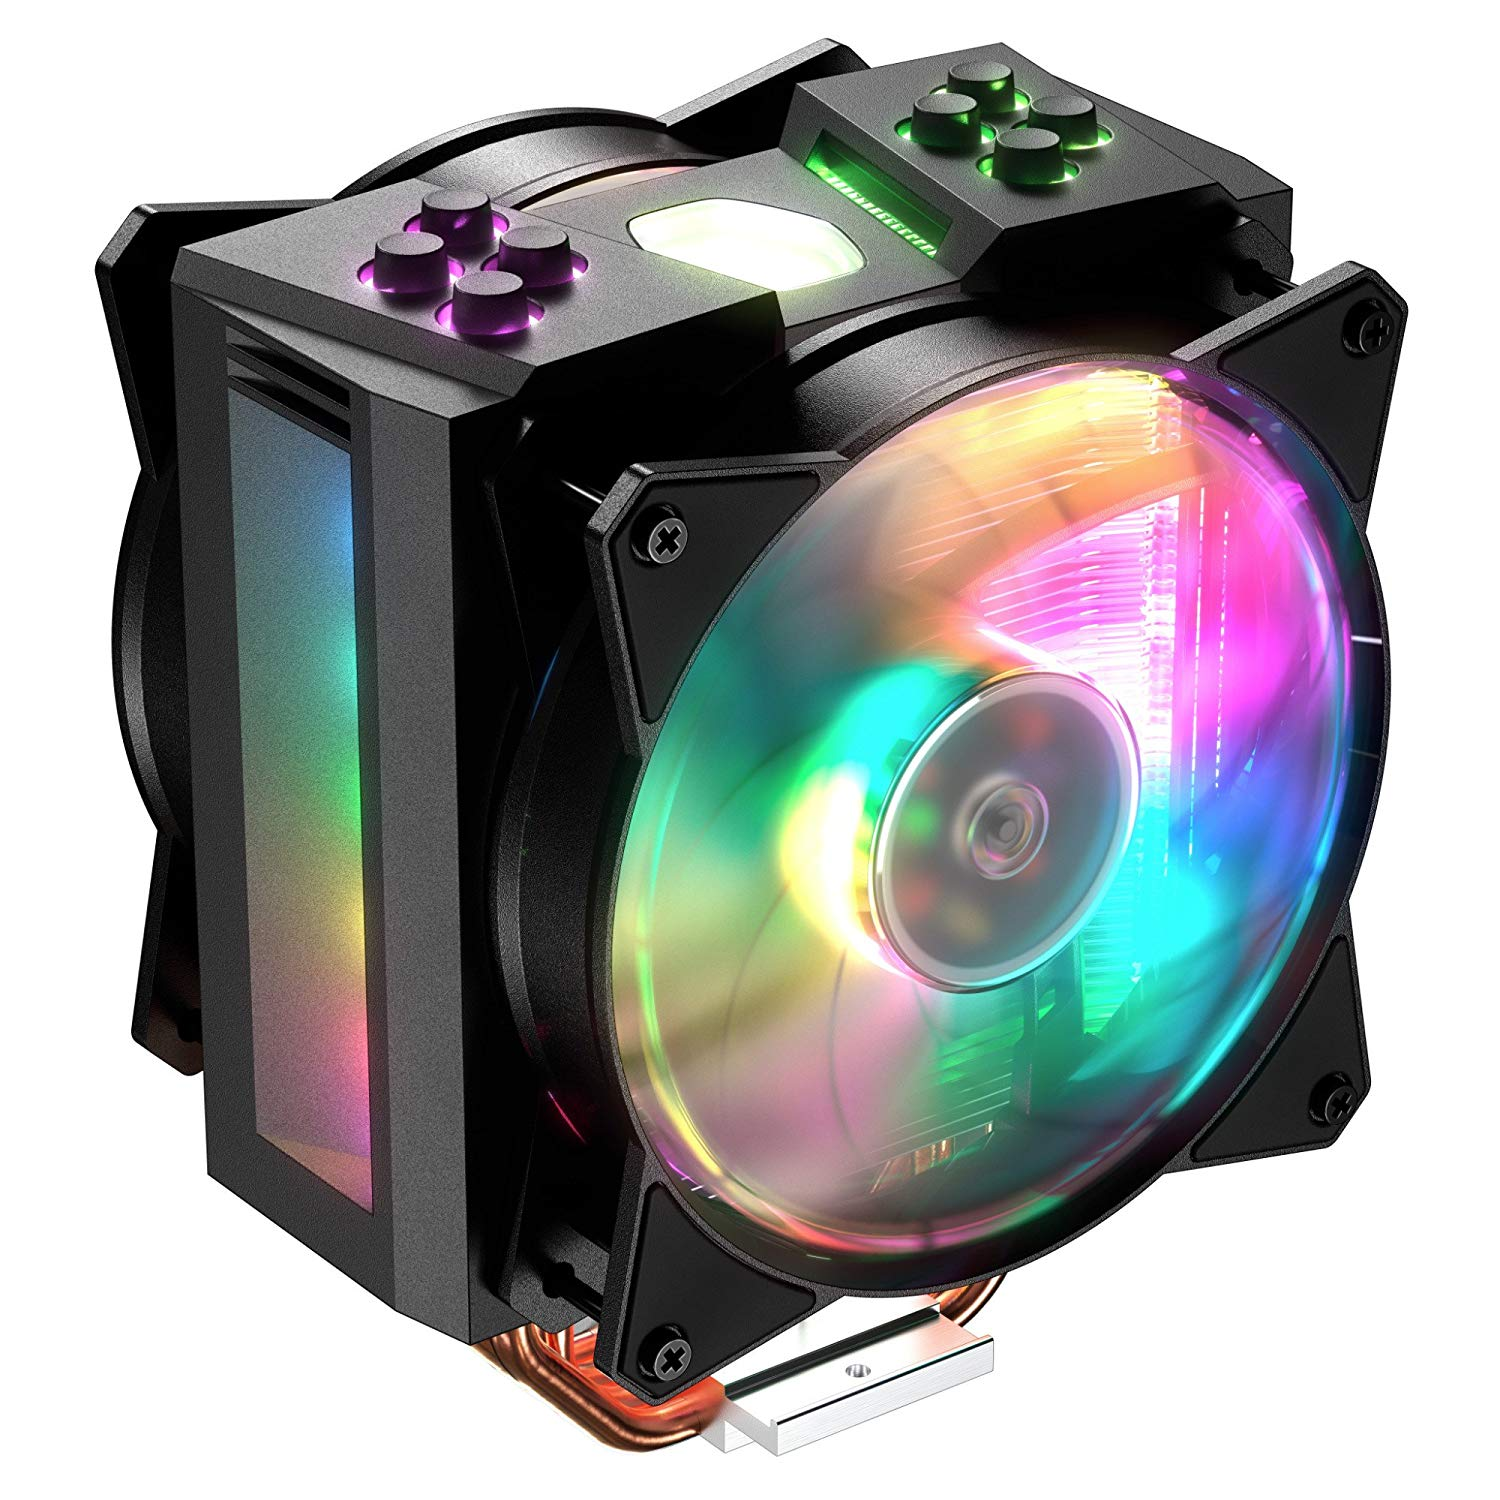 2 Cooler - Cooler Master MasterAir MA410M 28 Addressable RGB LED Lighting CPU Air Cooler - Best $1000 PC Build 2019